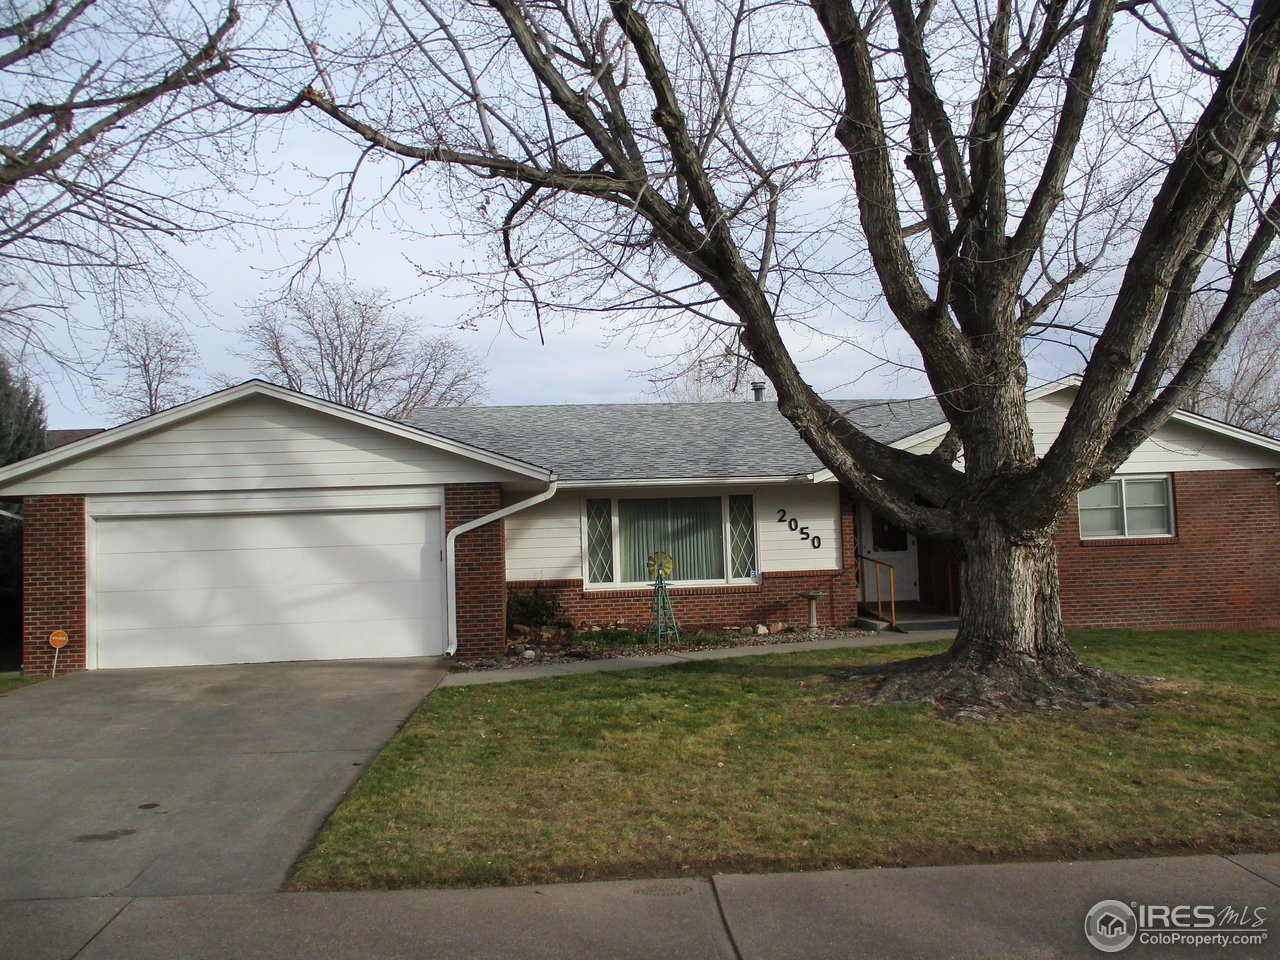 2050 22ND AVE, GREELEY, CO 80631